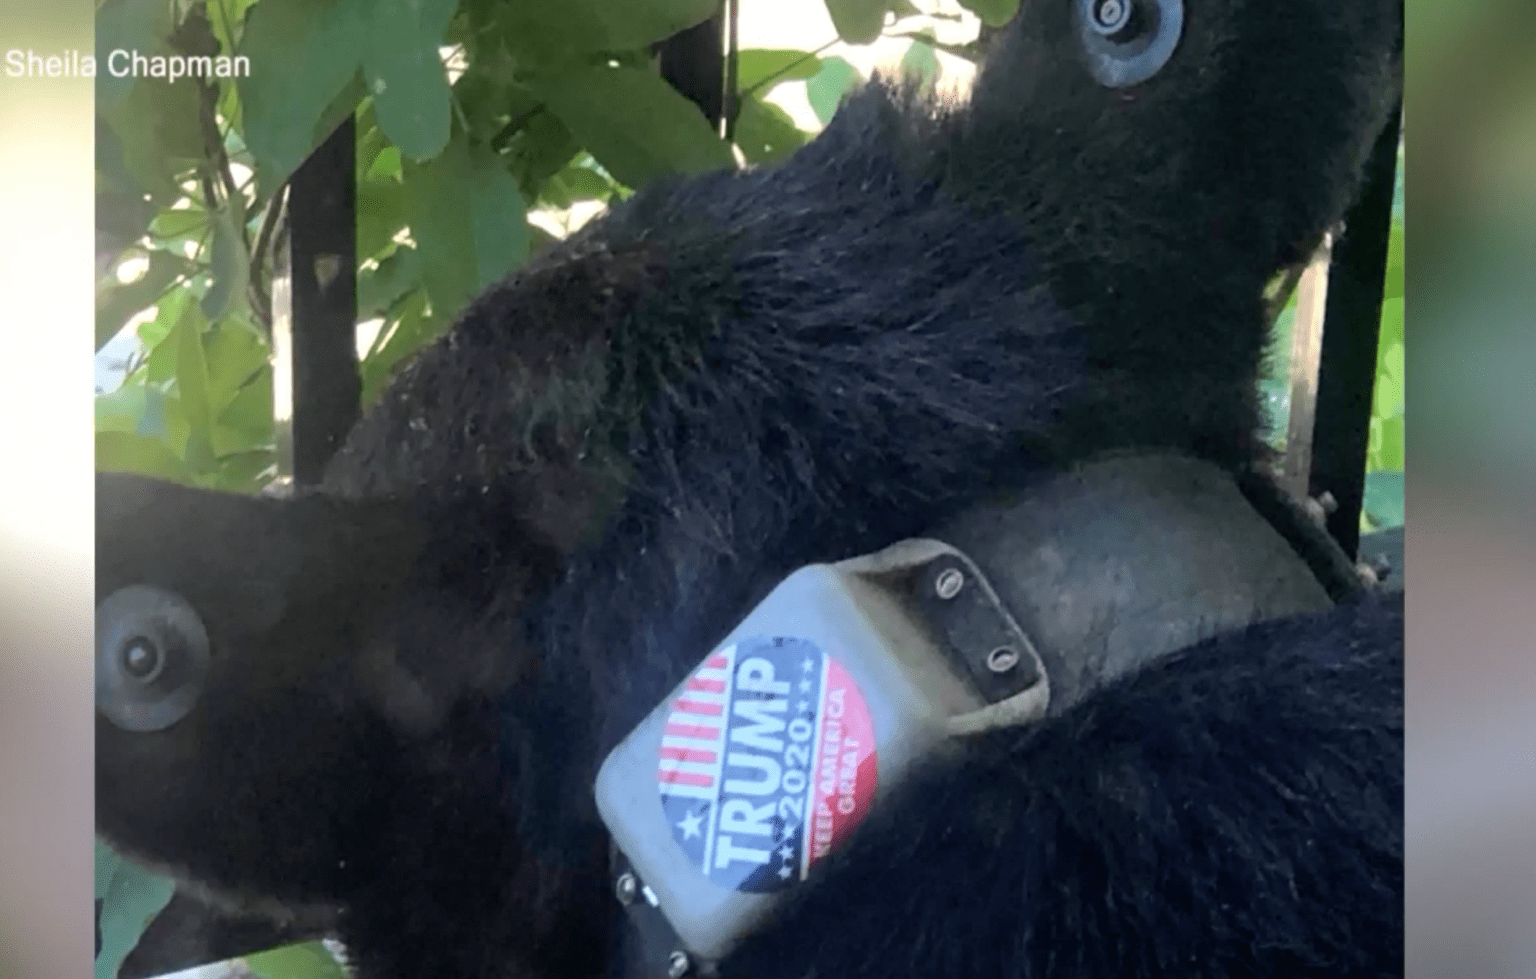 'Animal rights' group offers $5,000 reward to find out who put 'Trump 2020' stick on black bear